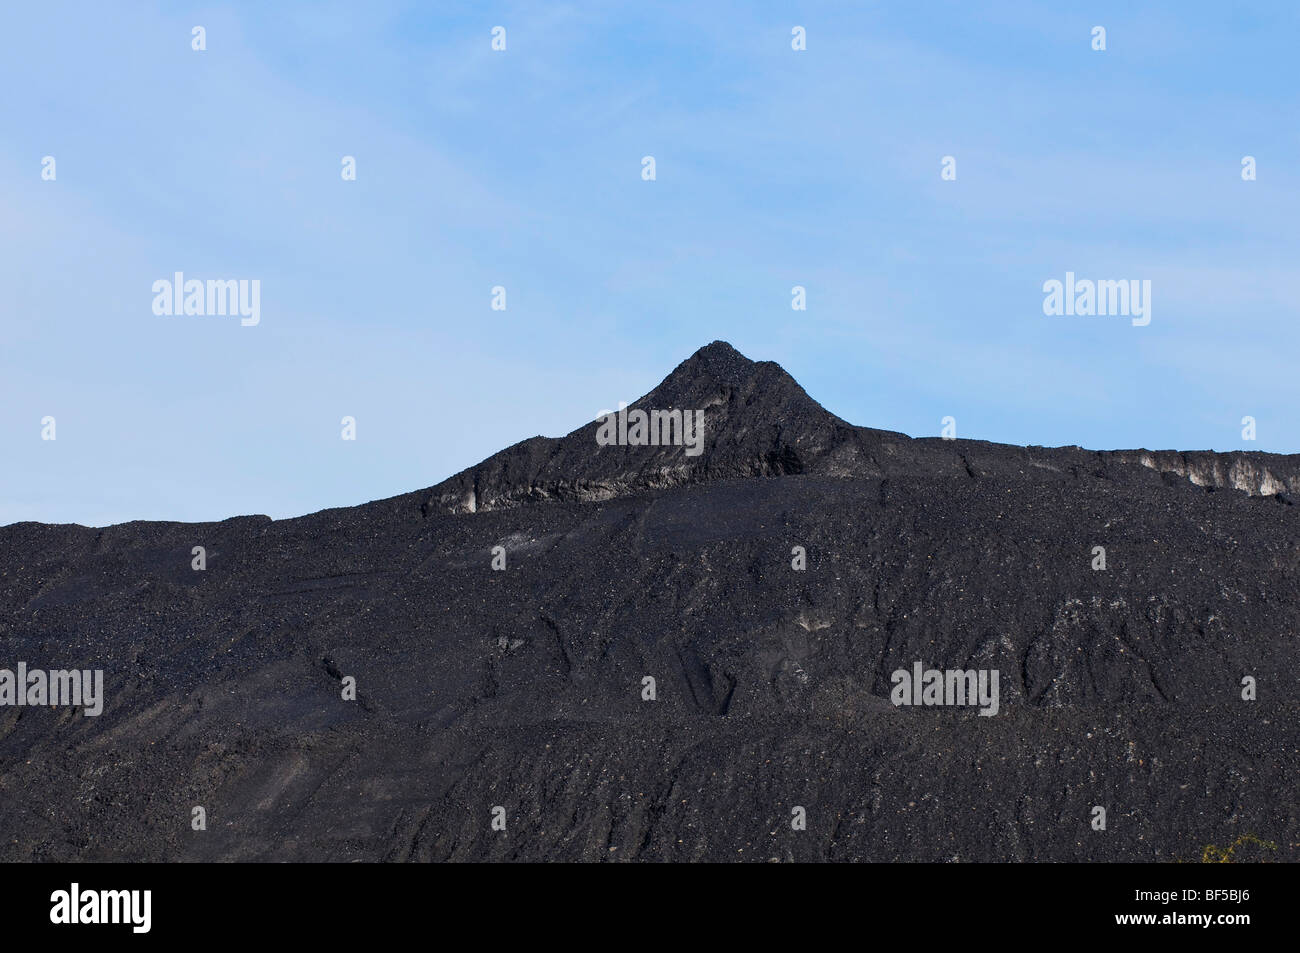 Mountain of coal against a blue sky - Stock Image